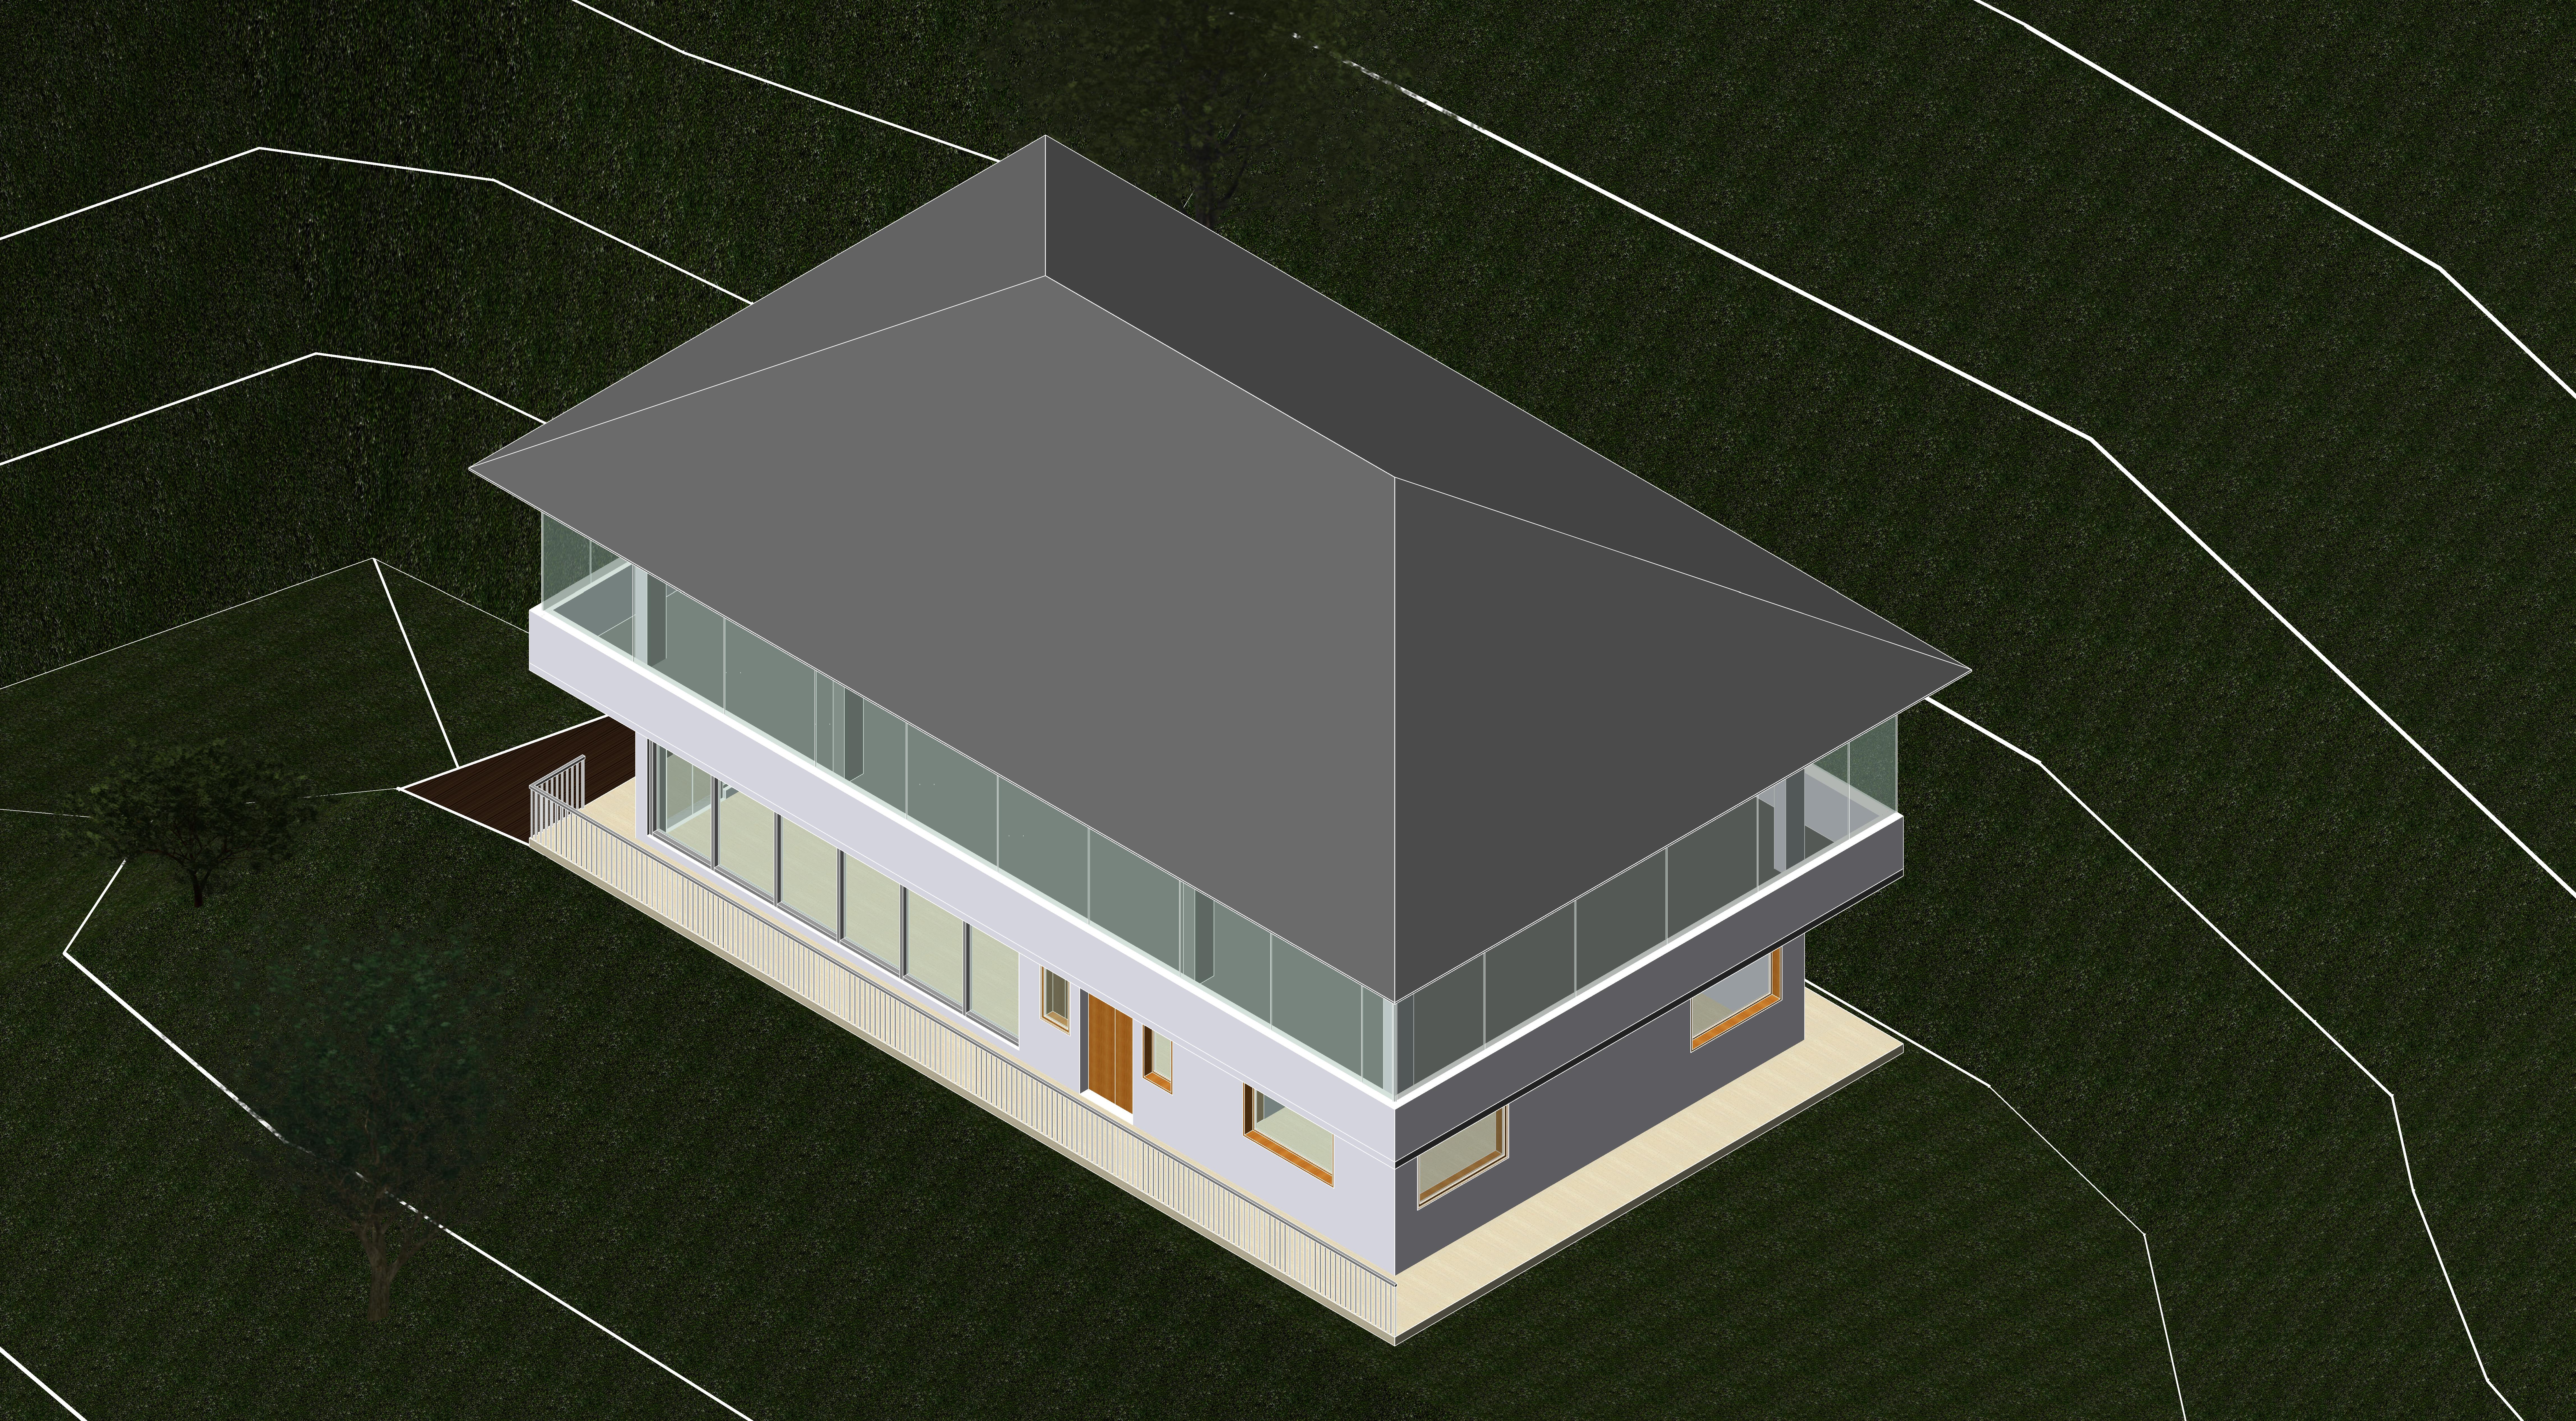 Corrugated Metal Sheet Roofing Autodesk Community Revit Products